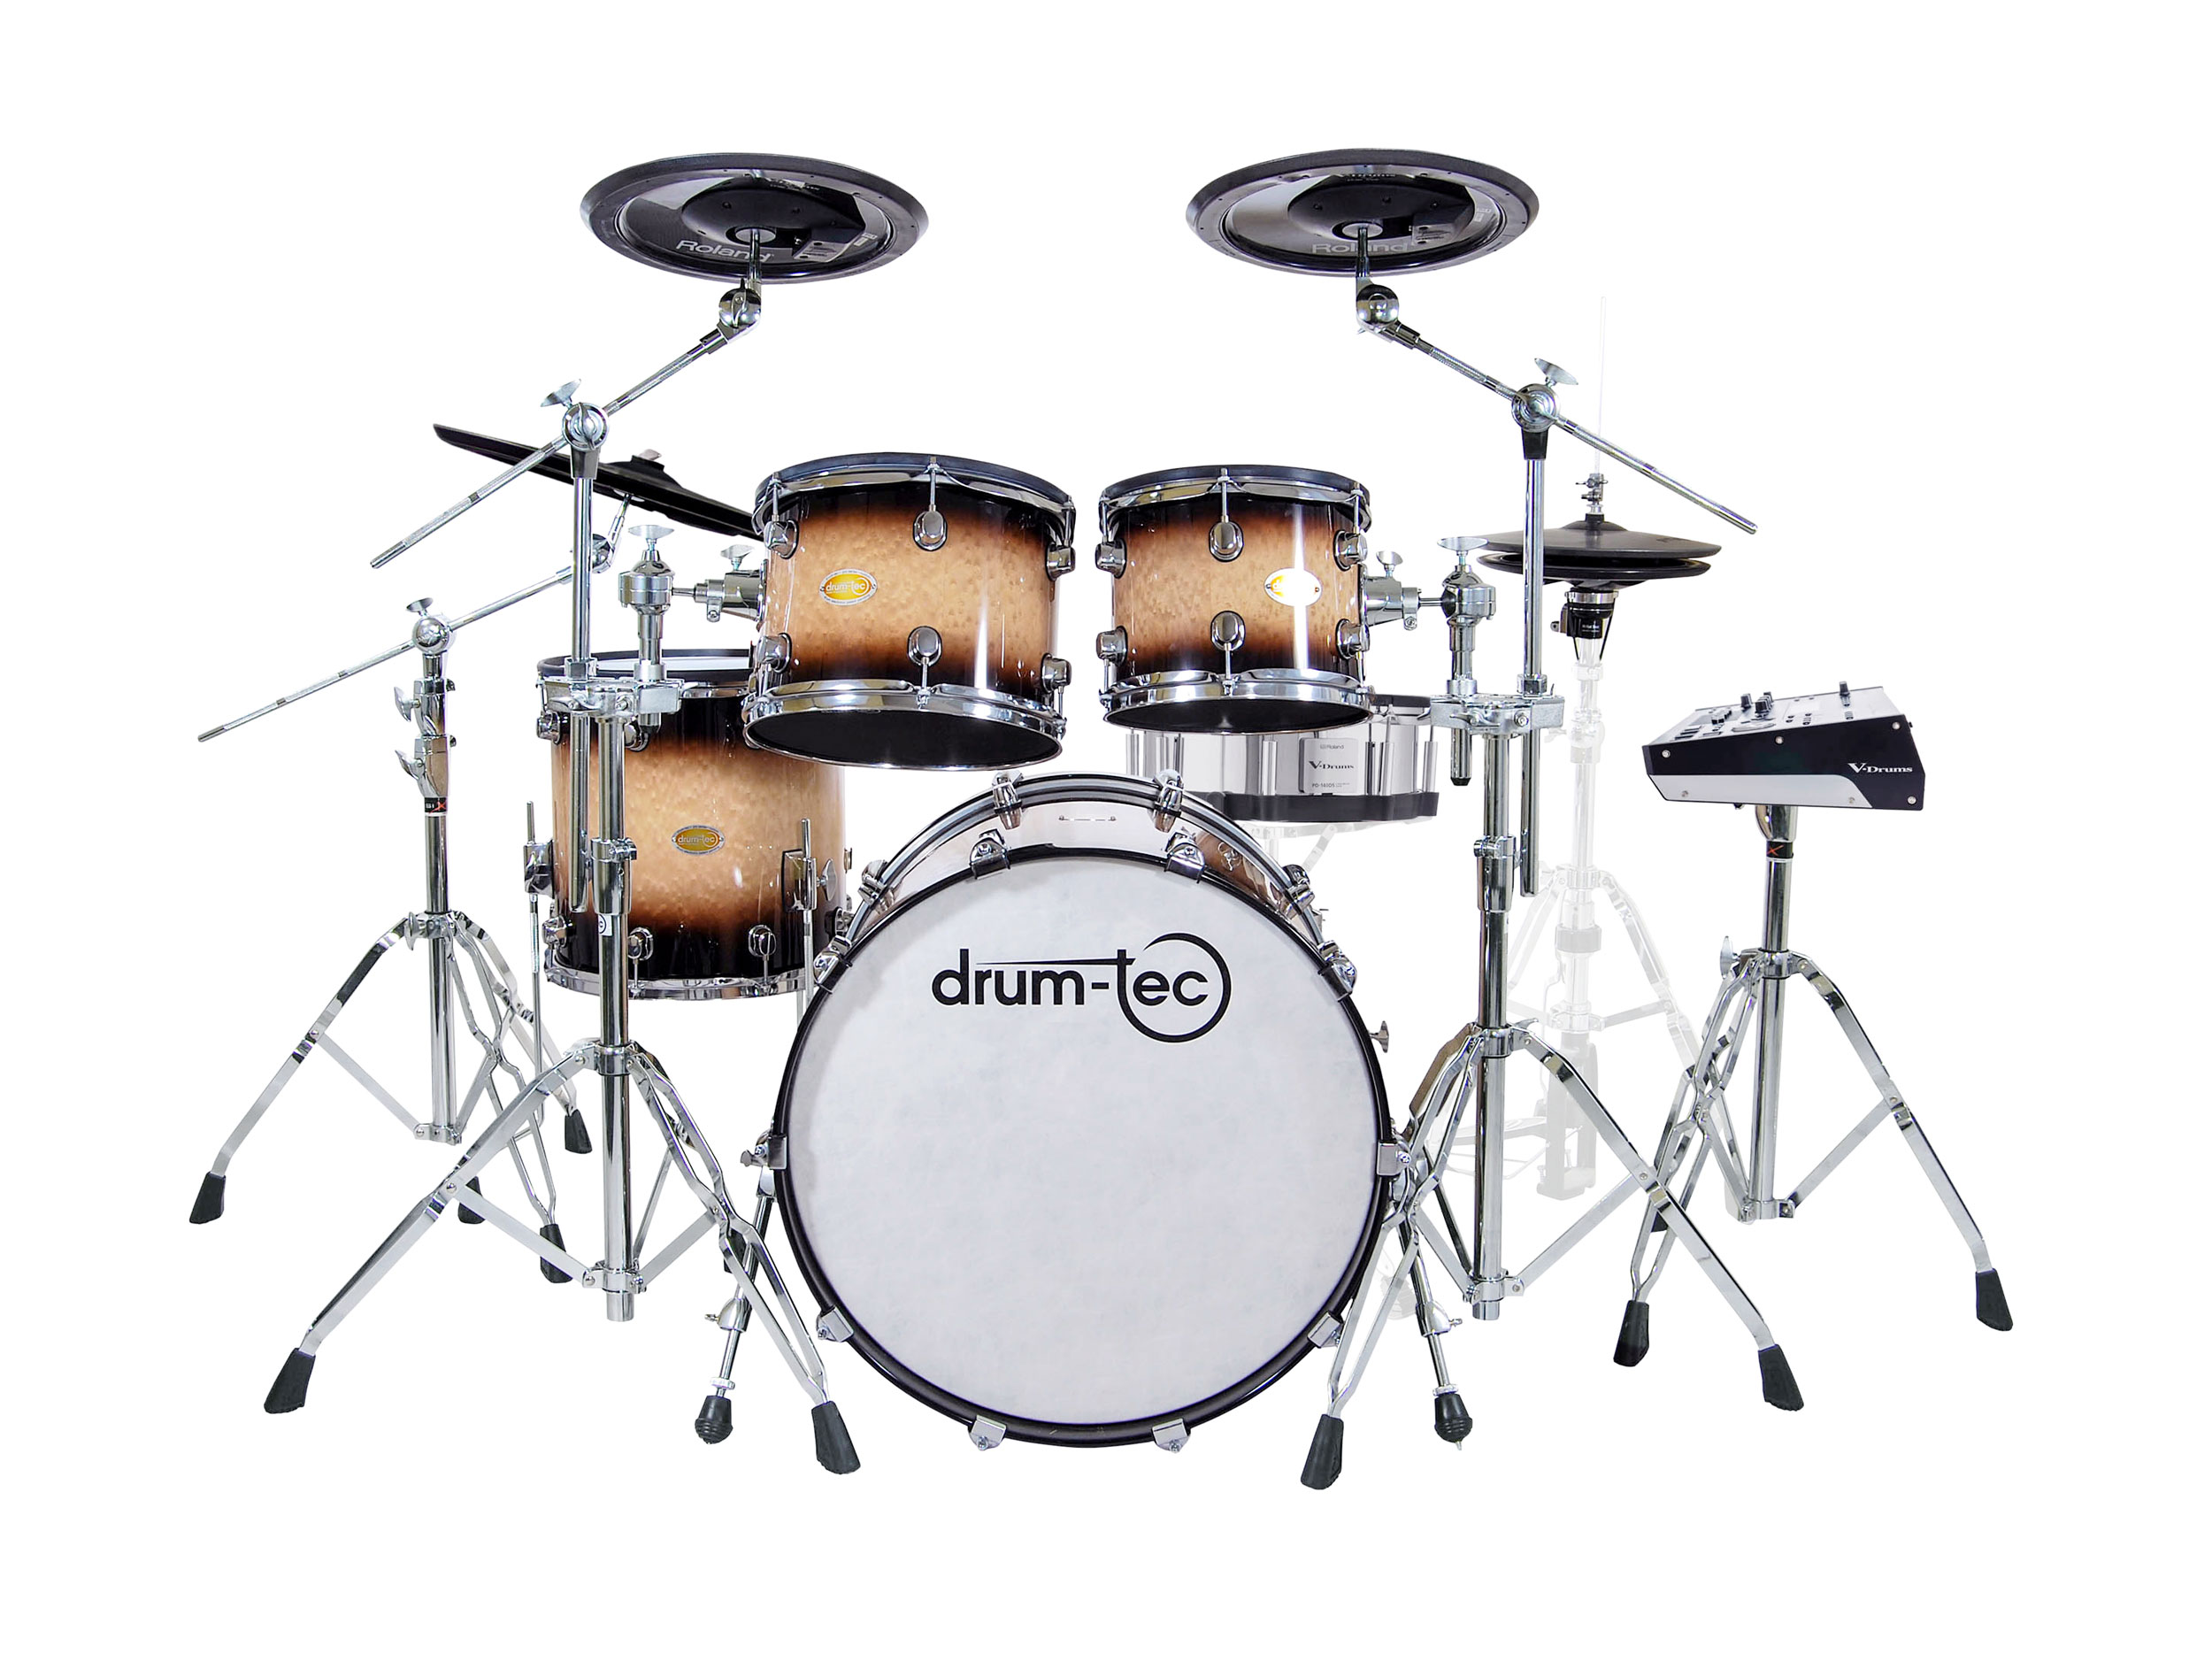 drum-tec pro-s Stage with Roland TD-50DP (brown fade)